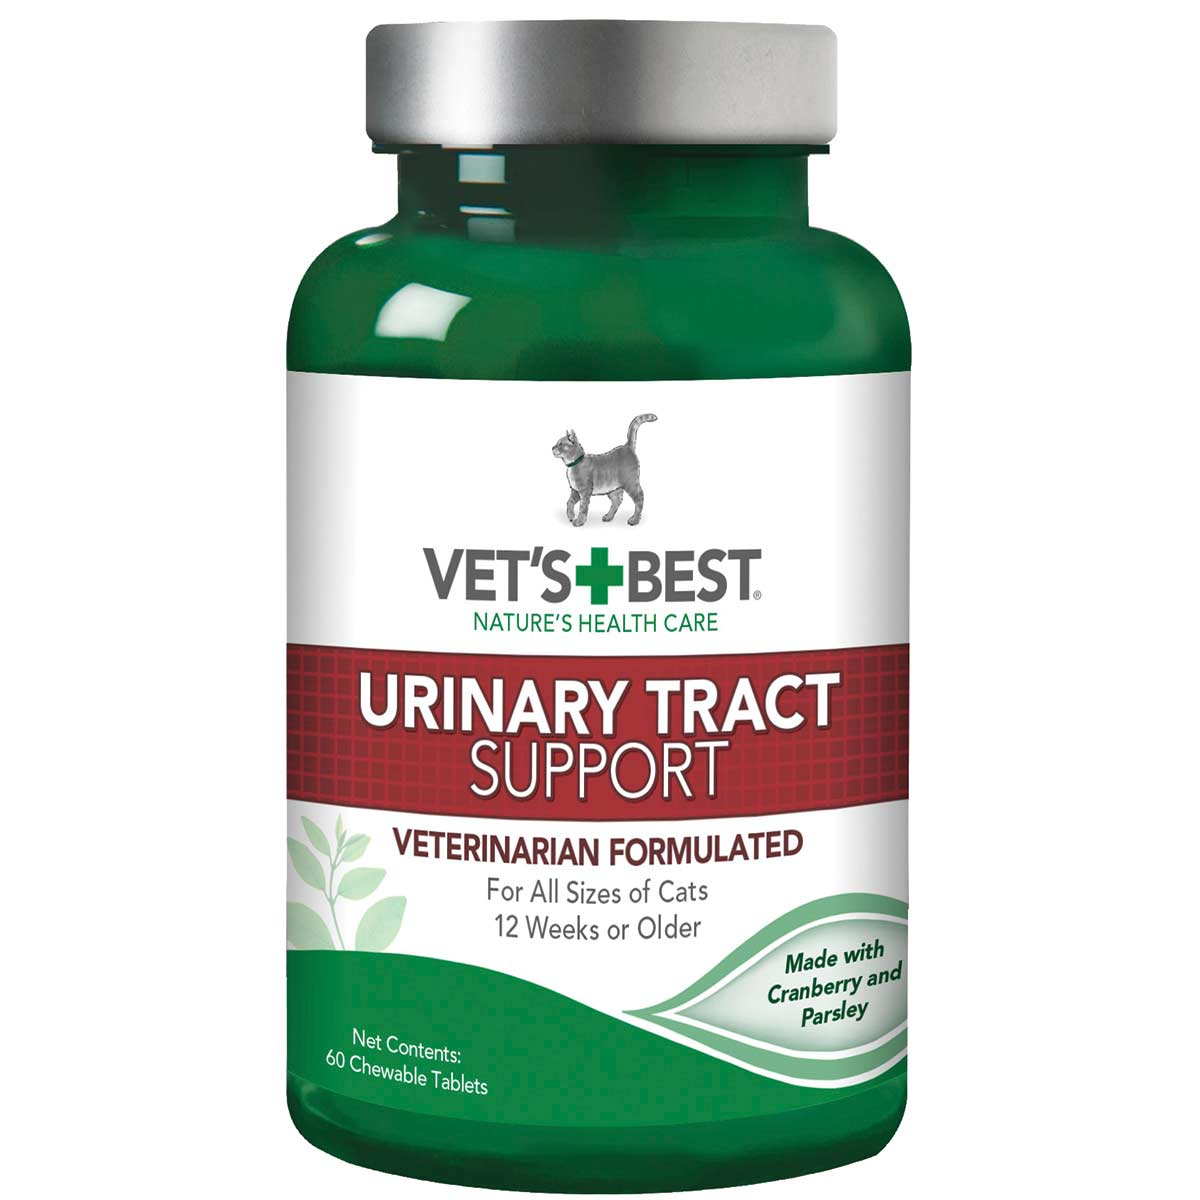 Vet's Best Urinary Tract Support Chewable Tablets for cats - 60 count